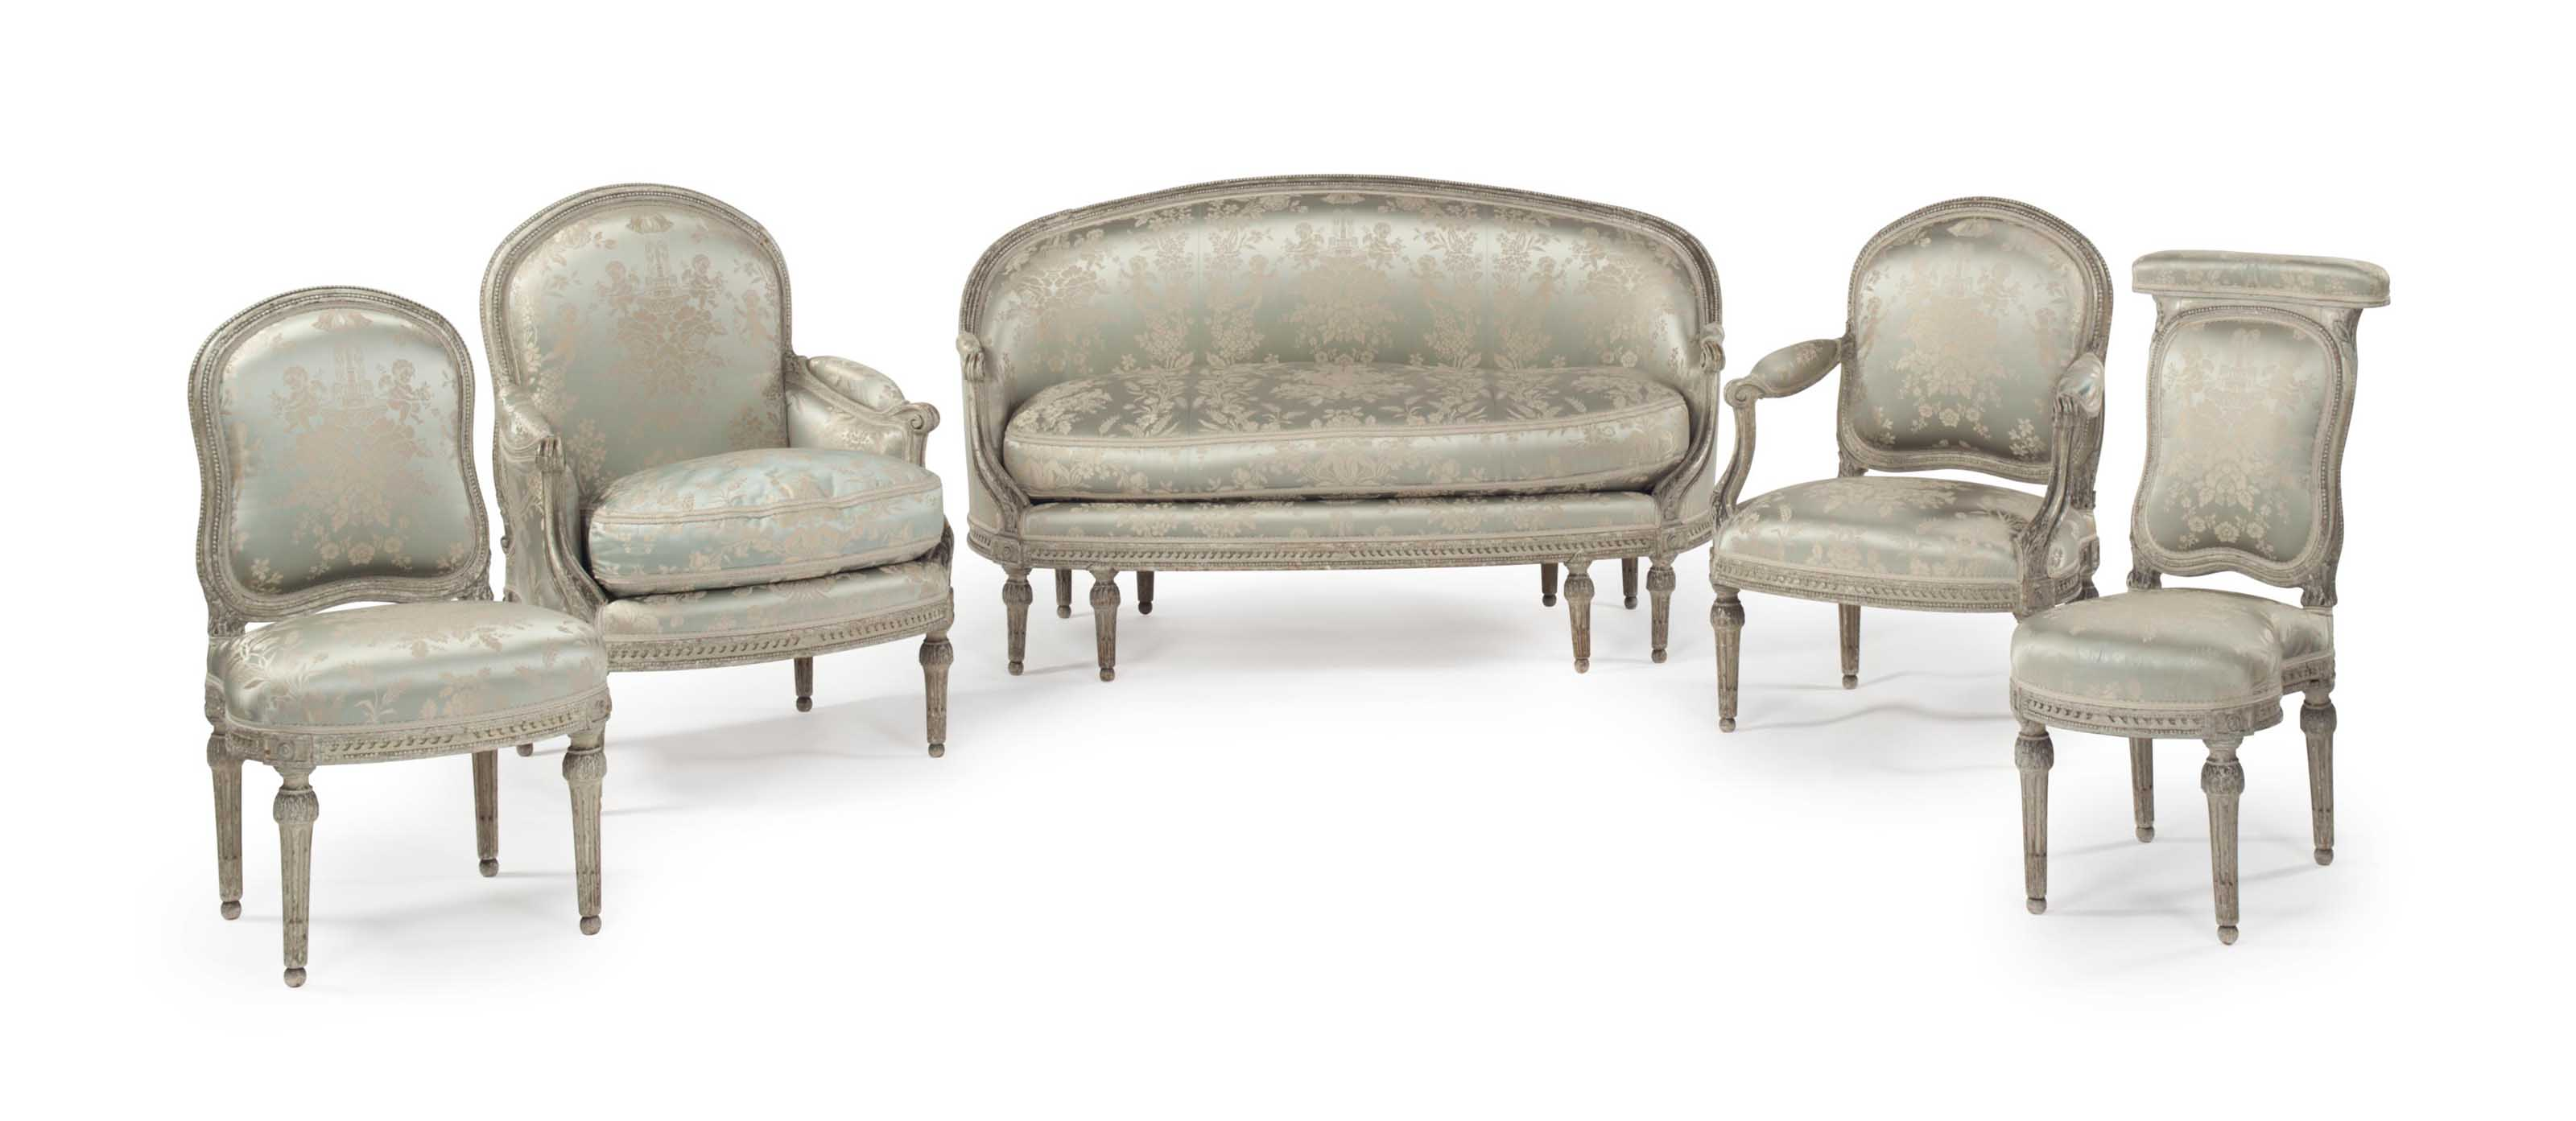 A SUITE OF LOUIS XVI GREY-PAINTED SEAT-FURNITURE